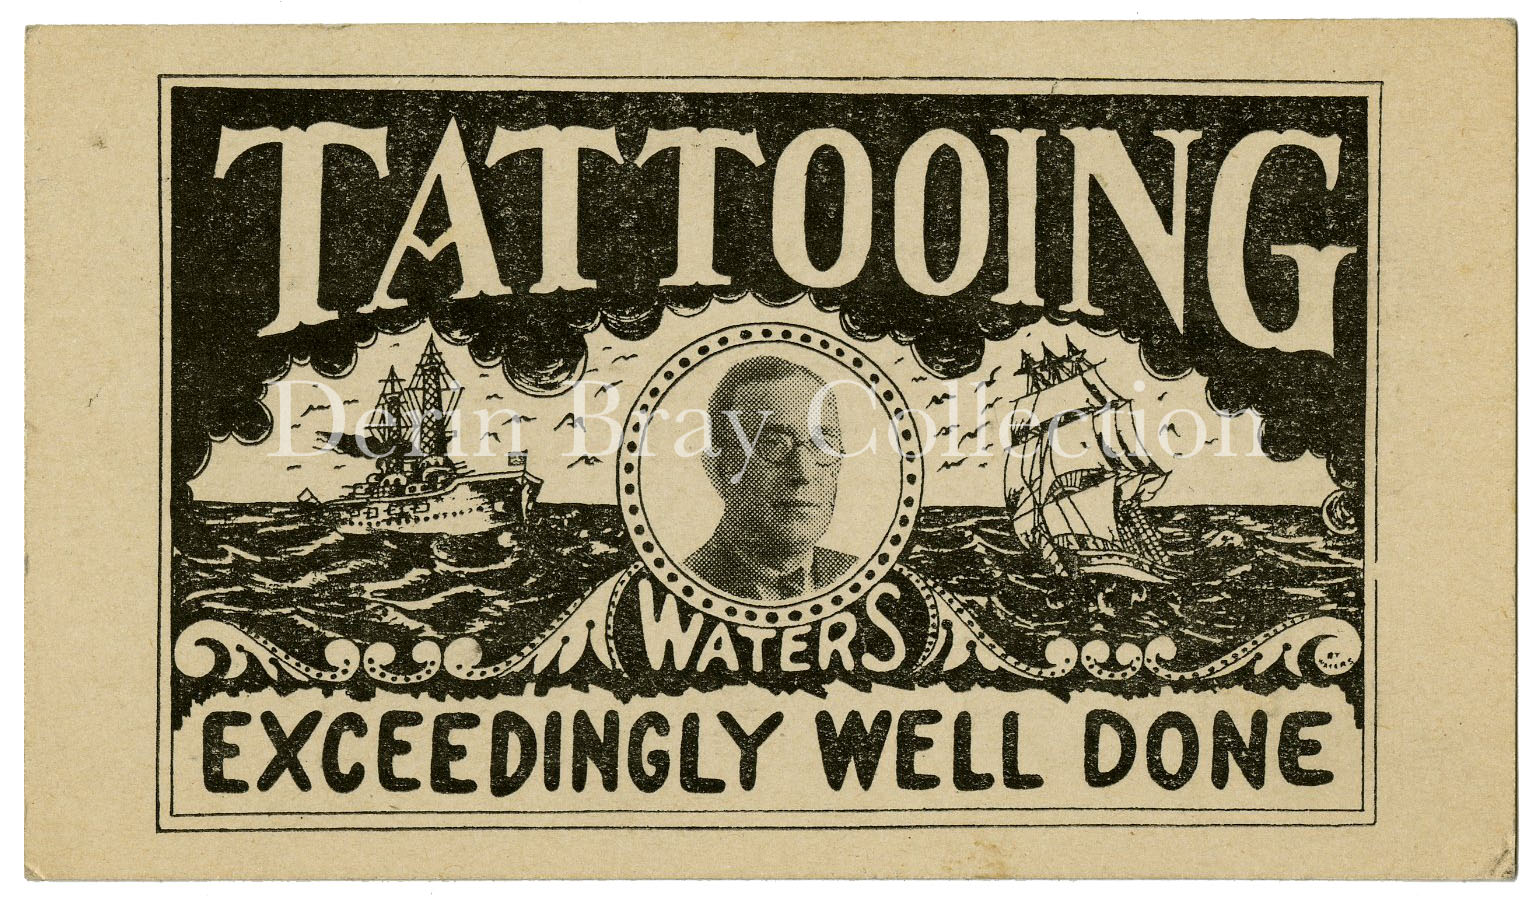 Percy_Waters_Detroit_Tattoo_Business_Card_Derin_Bray.jpg